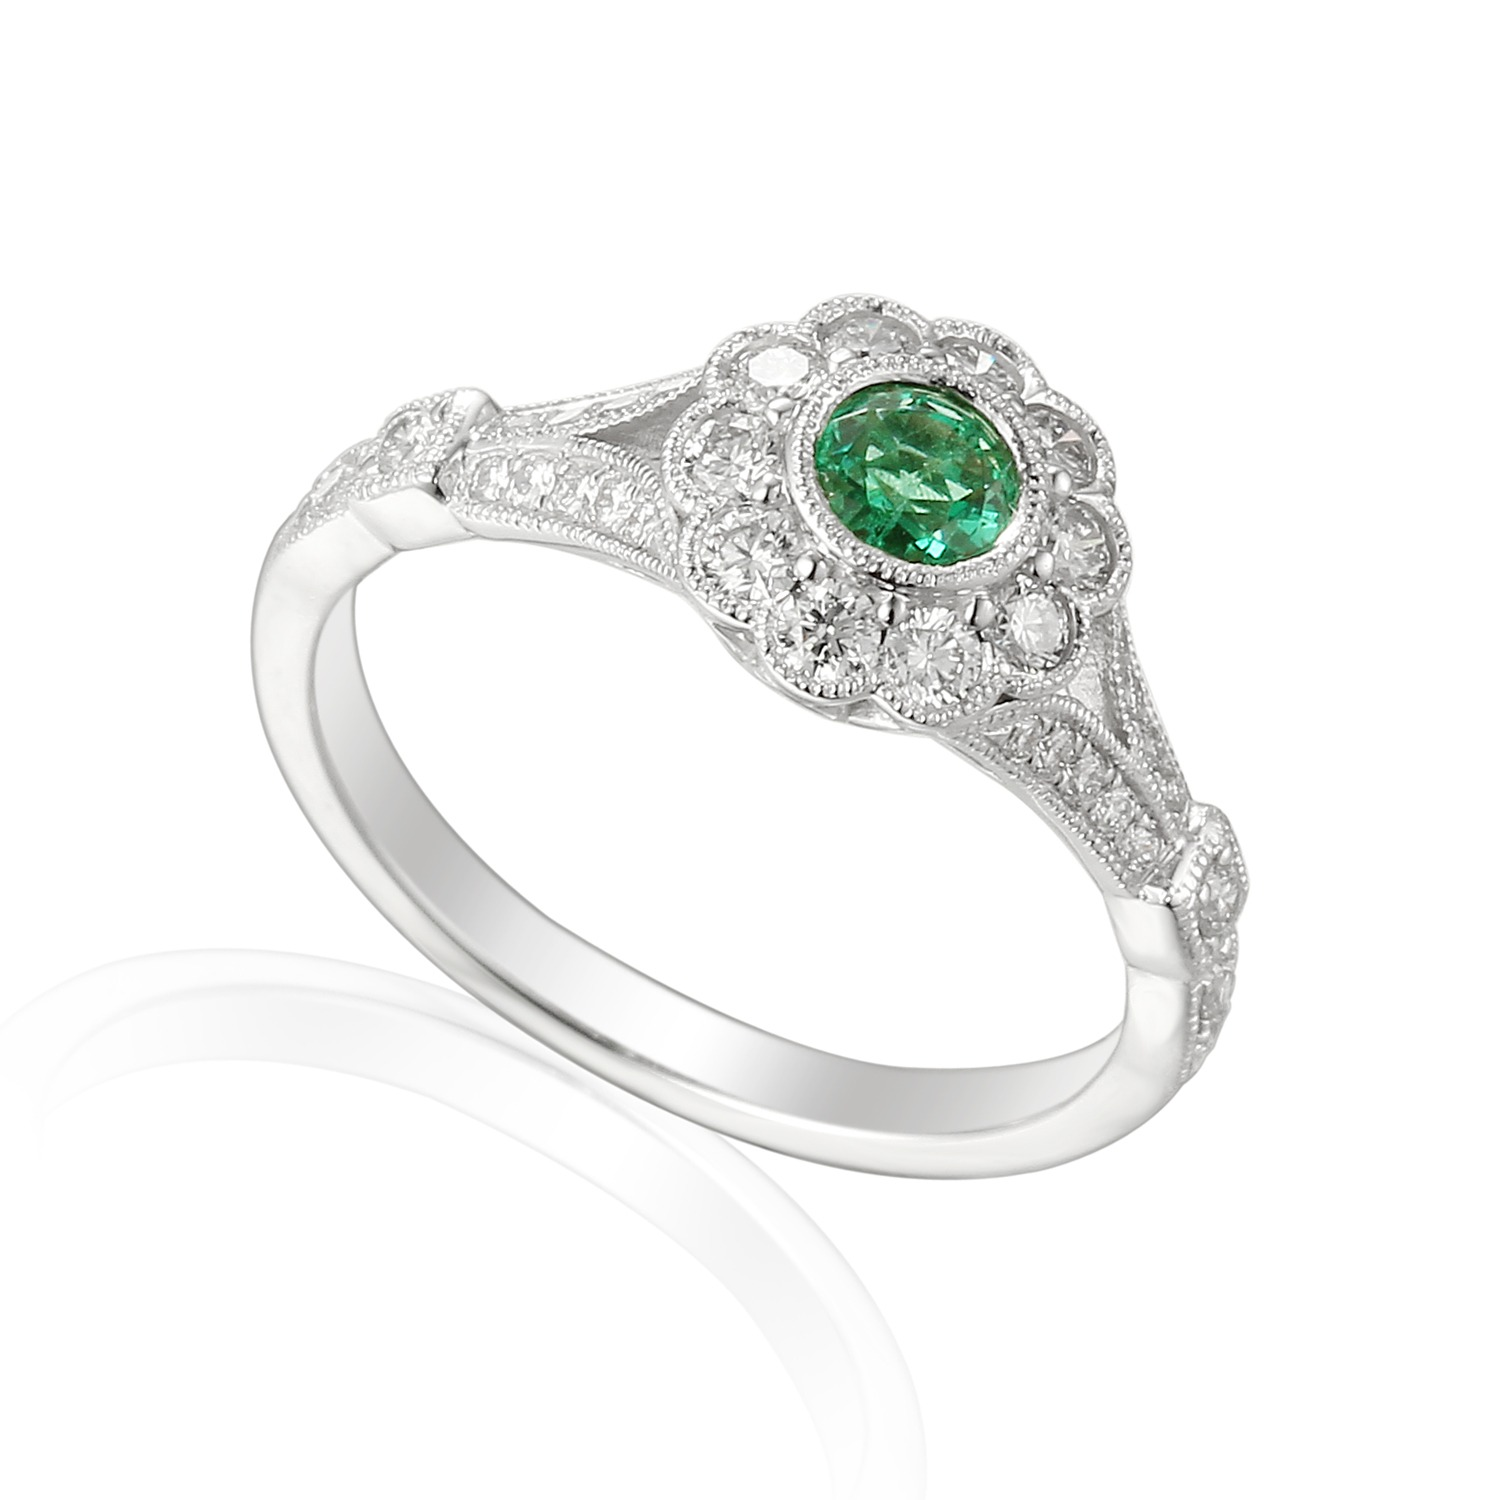 18ct white gold emerald diamond engagement ring